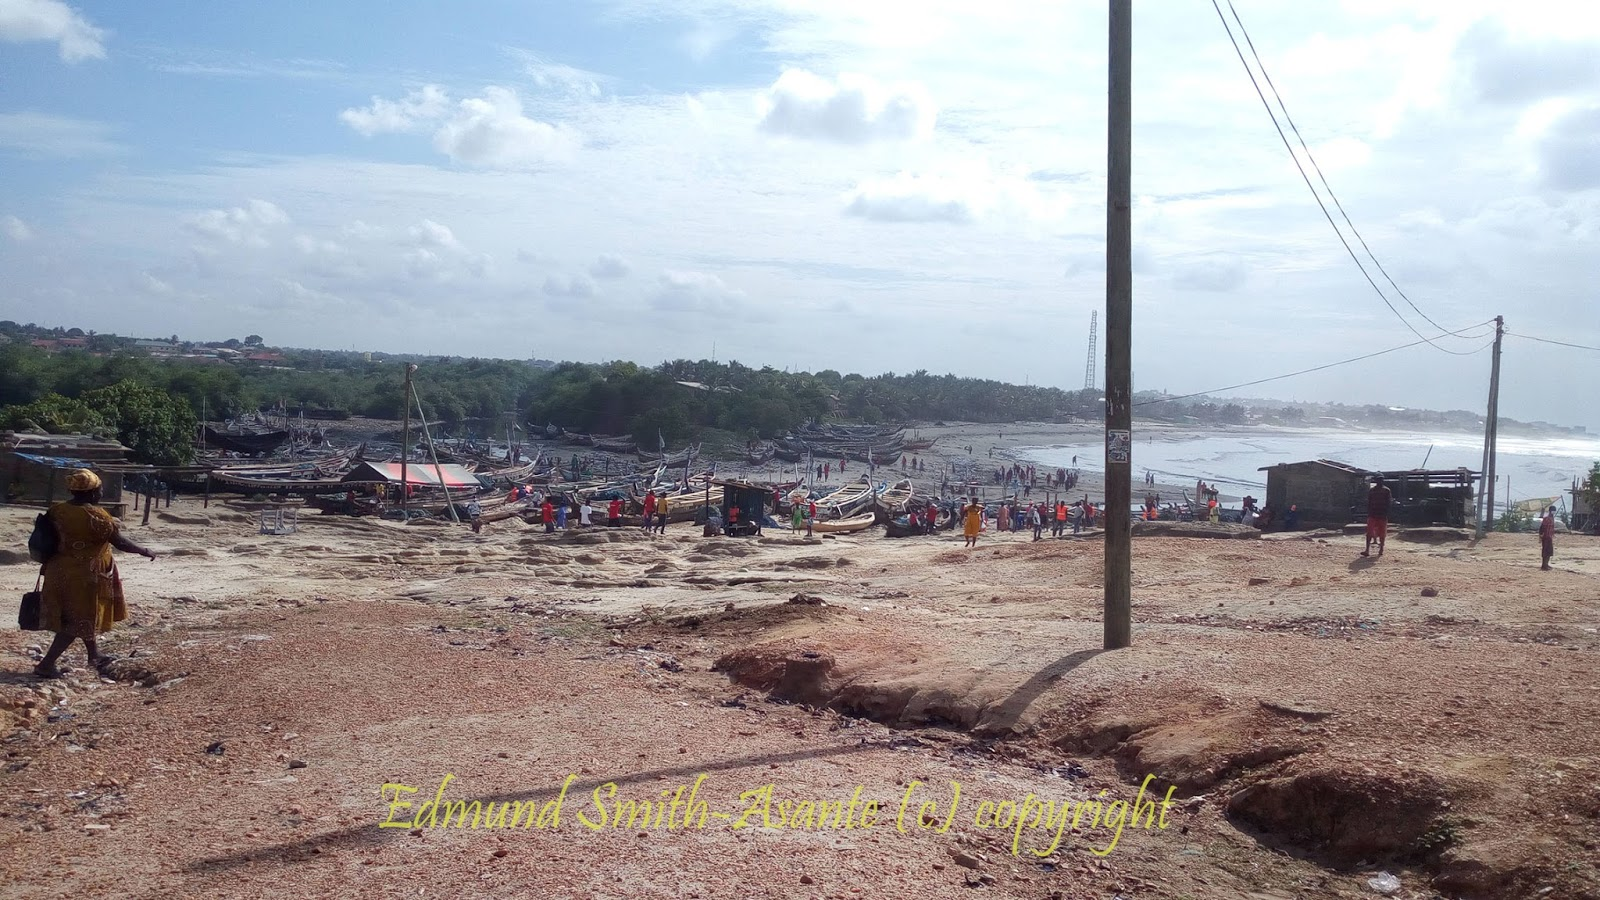 The Teshie Sangonaa Landing Beach From A Distance